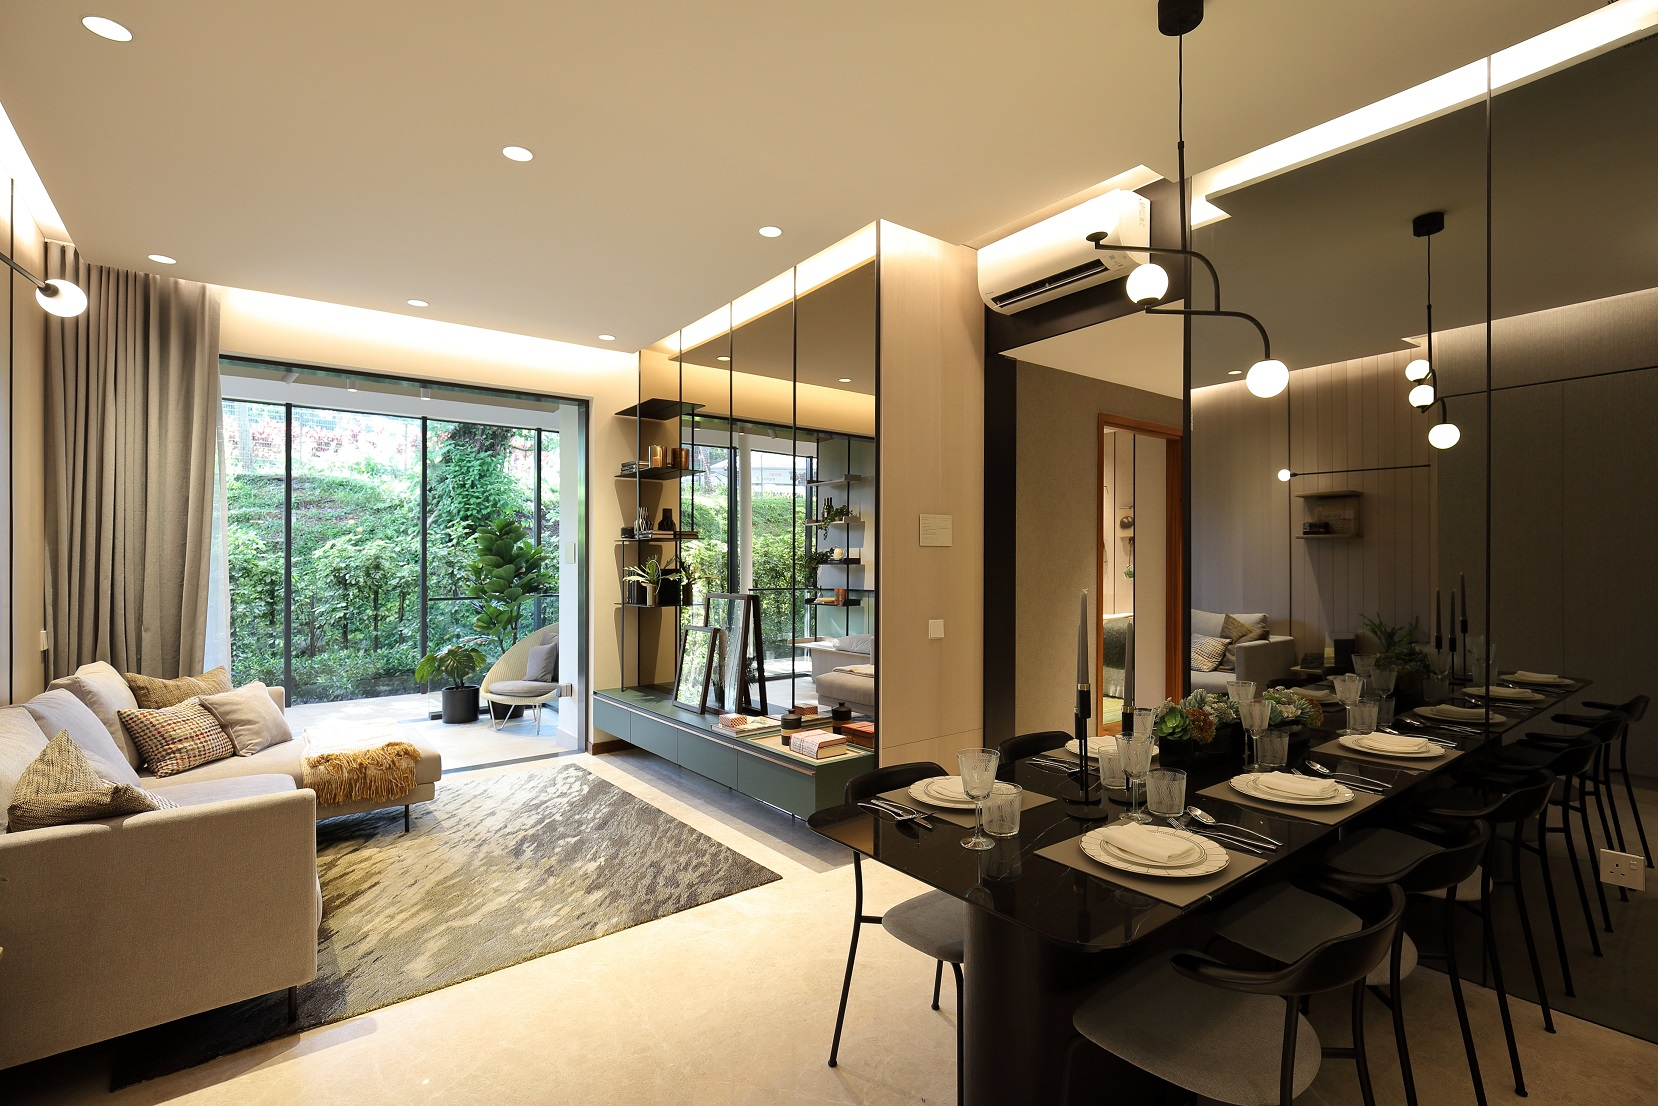 A freshly established project in Singapore in the well-known Hi-Technology  Bukit Timah estate Ep16 – Fourth Avenue Residences